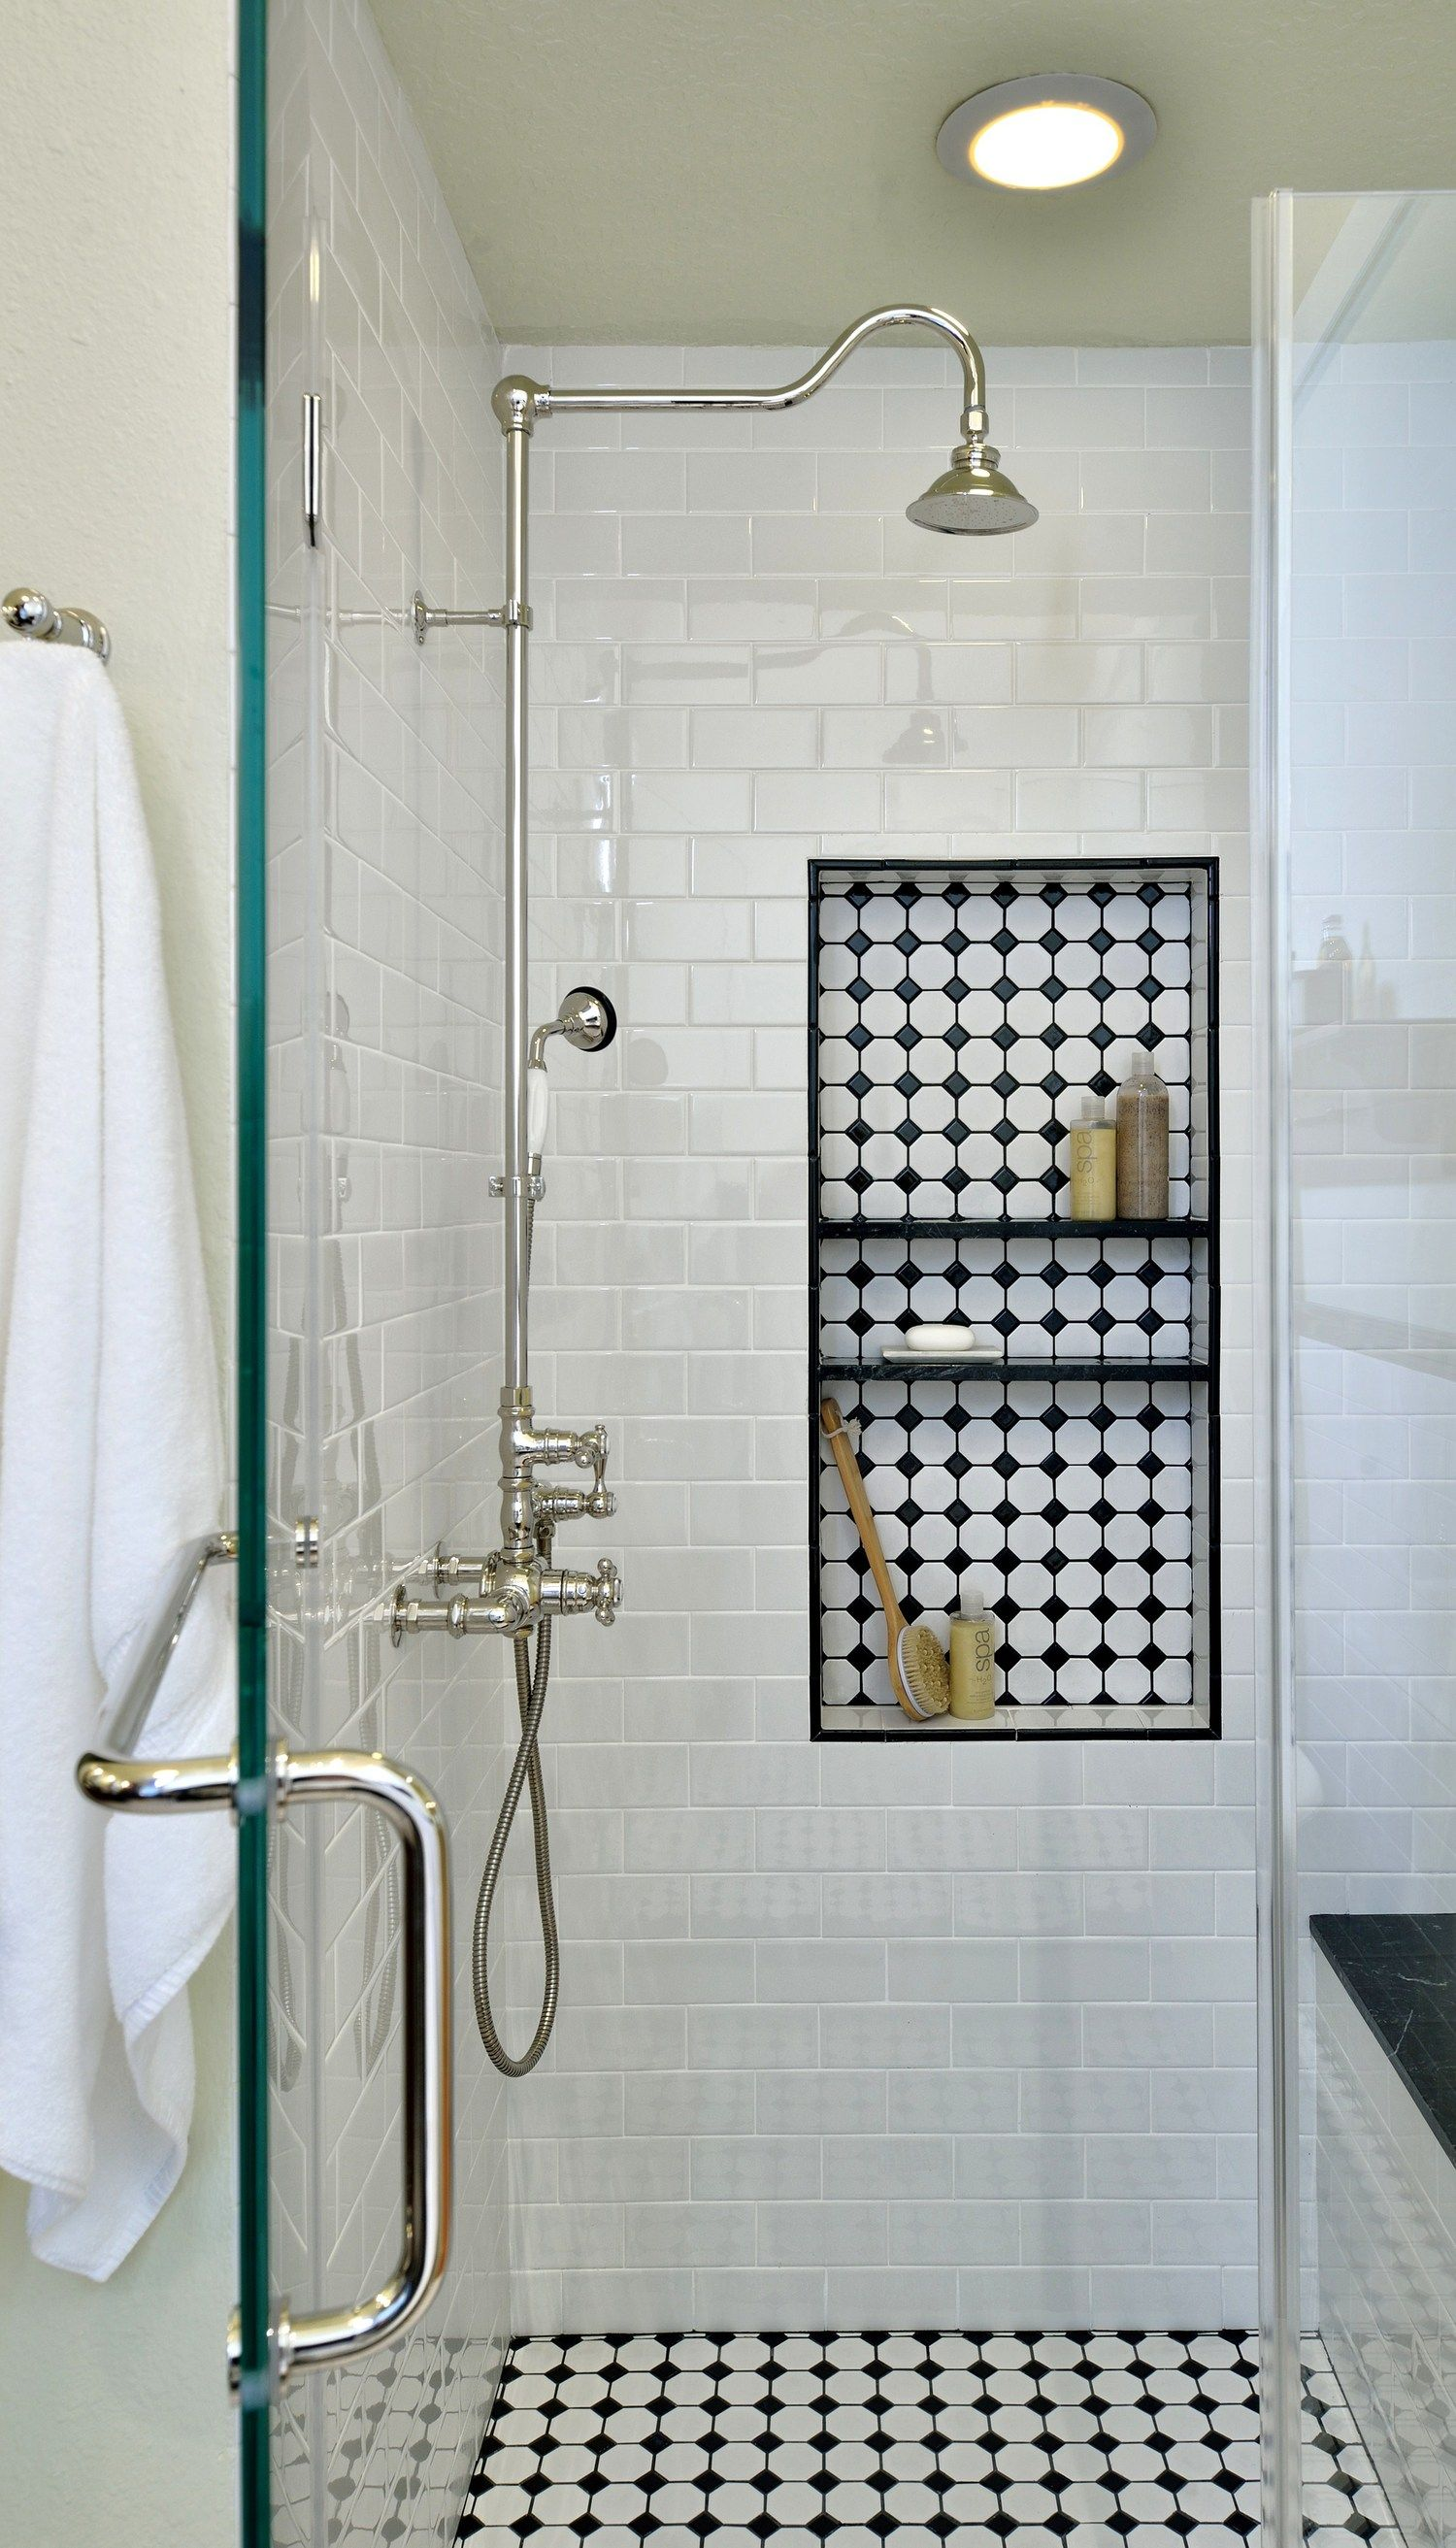 Cool Shower Tile a house with a cool design | white subway tiles, subway tiles and